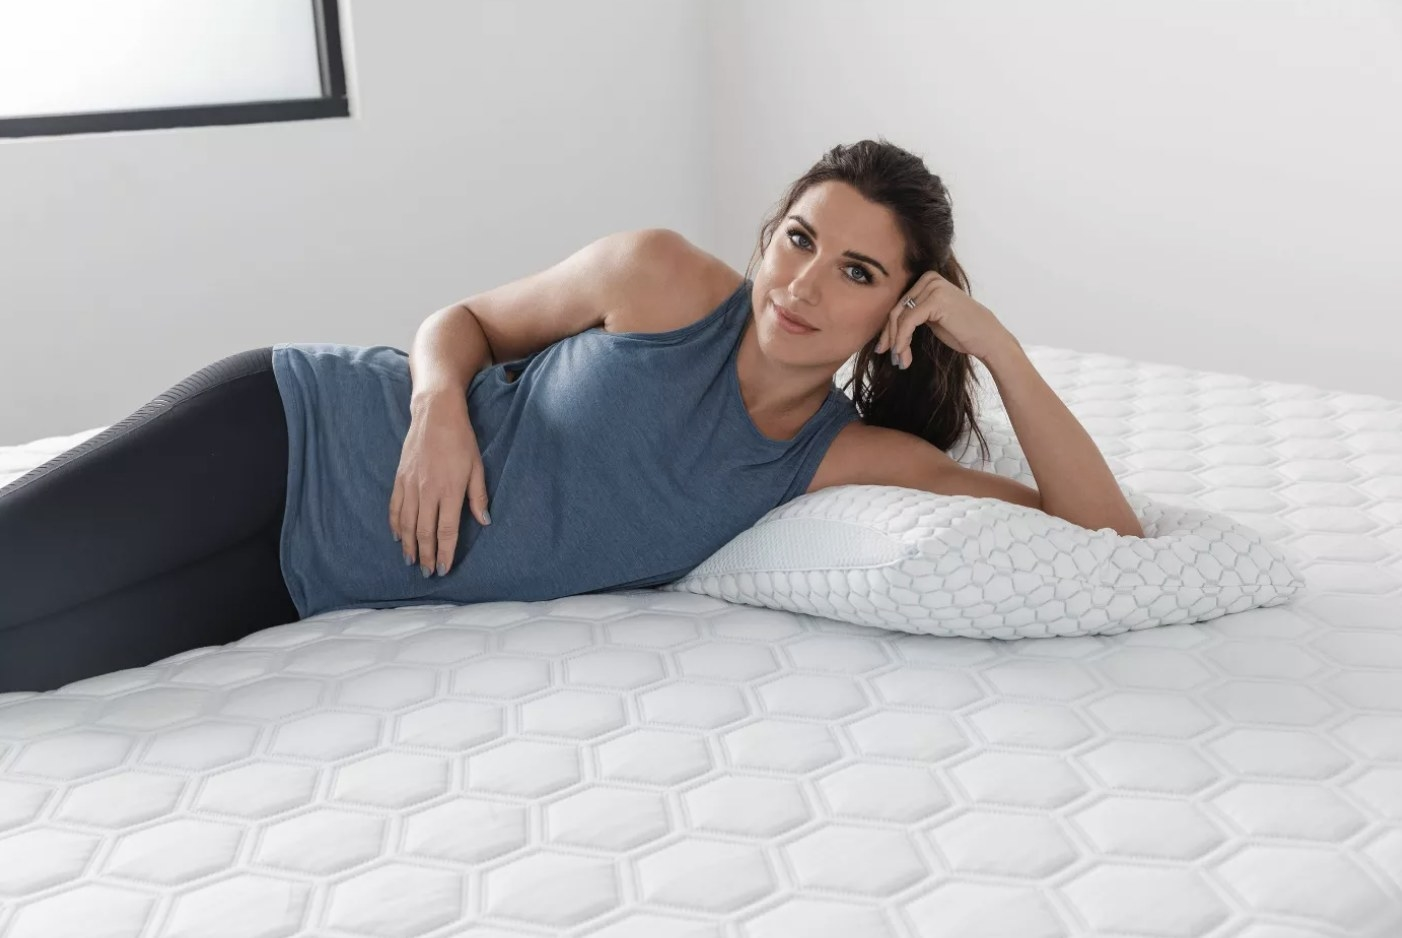 Model is lounging on a foam plllow on a bed